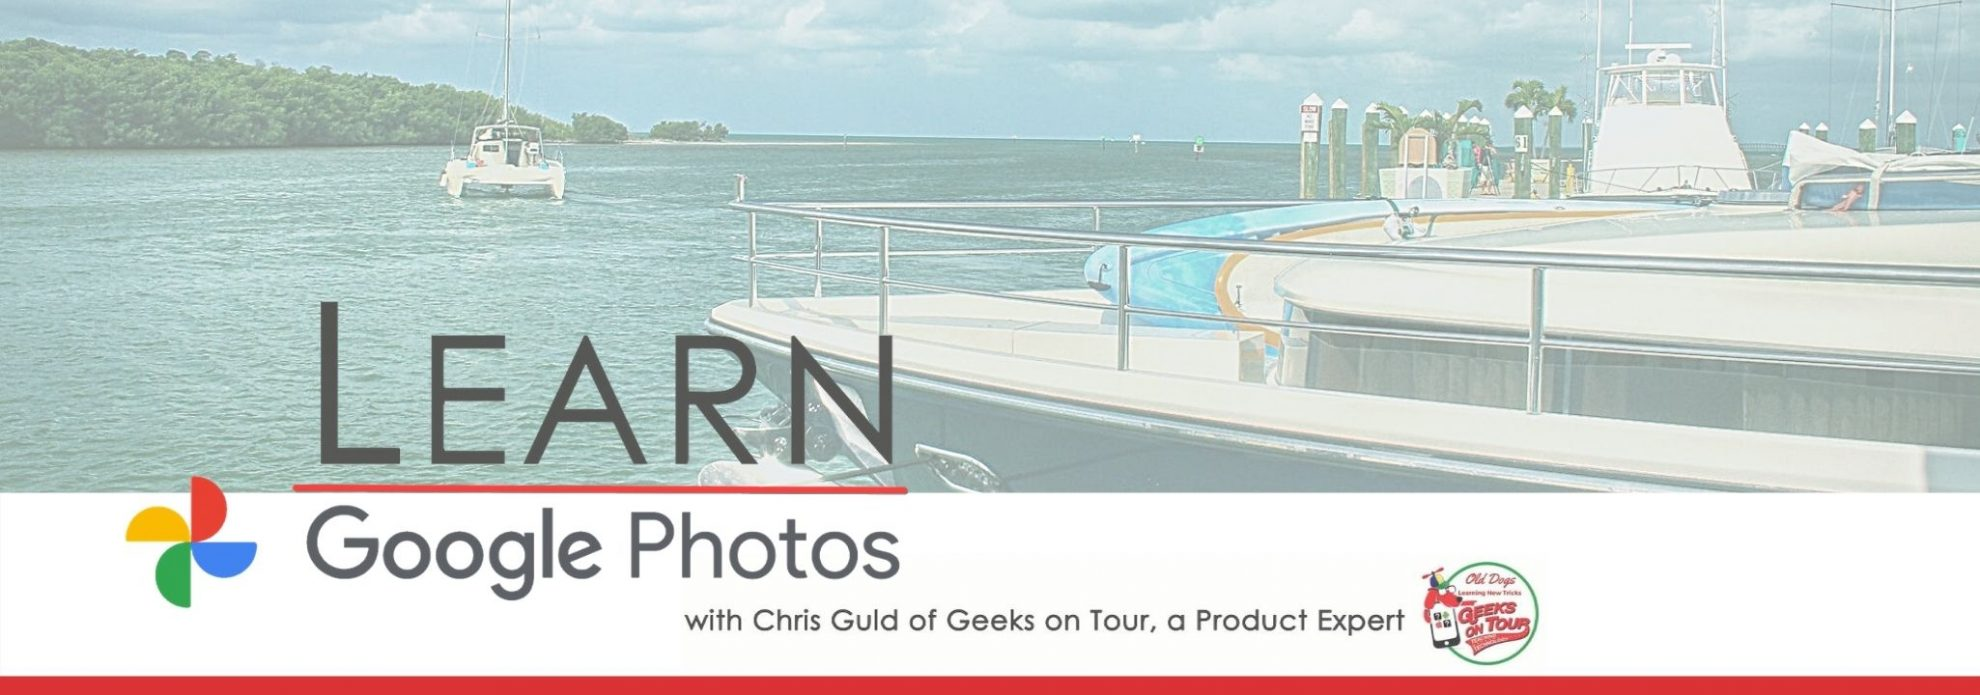 Learn Google Photos 2020 with Google Product Expert Chris Guld